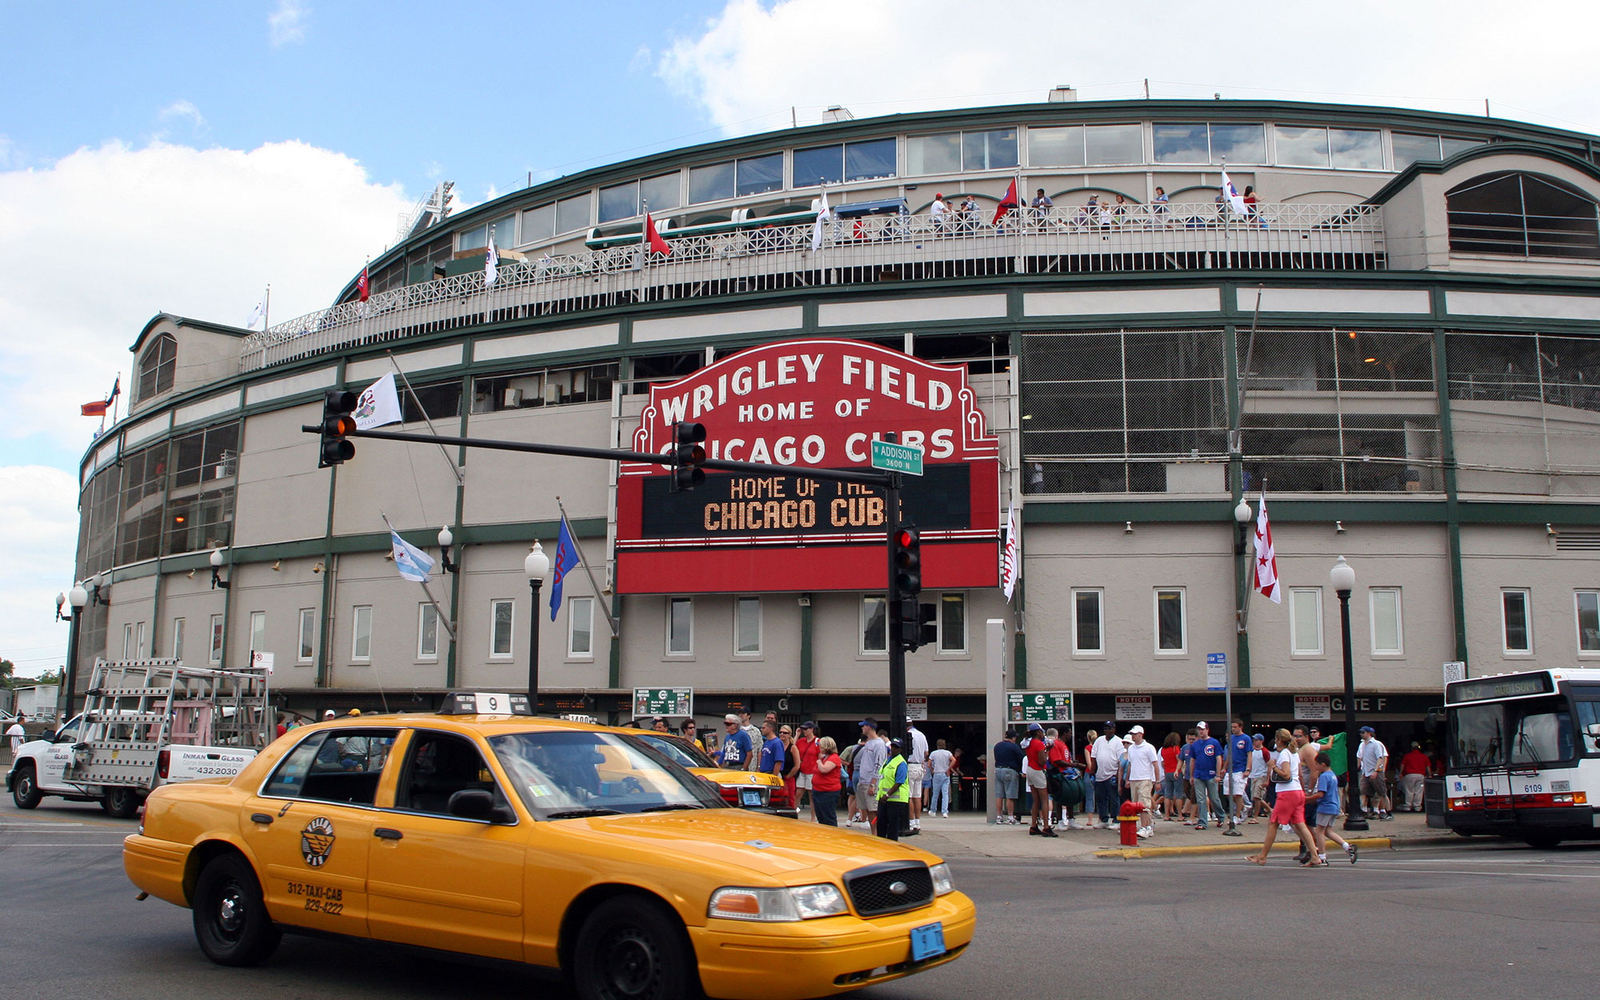 Wrigley Field: Chicago Cubs